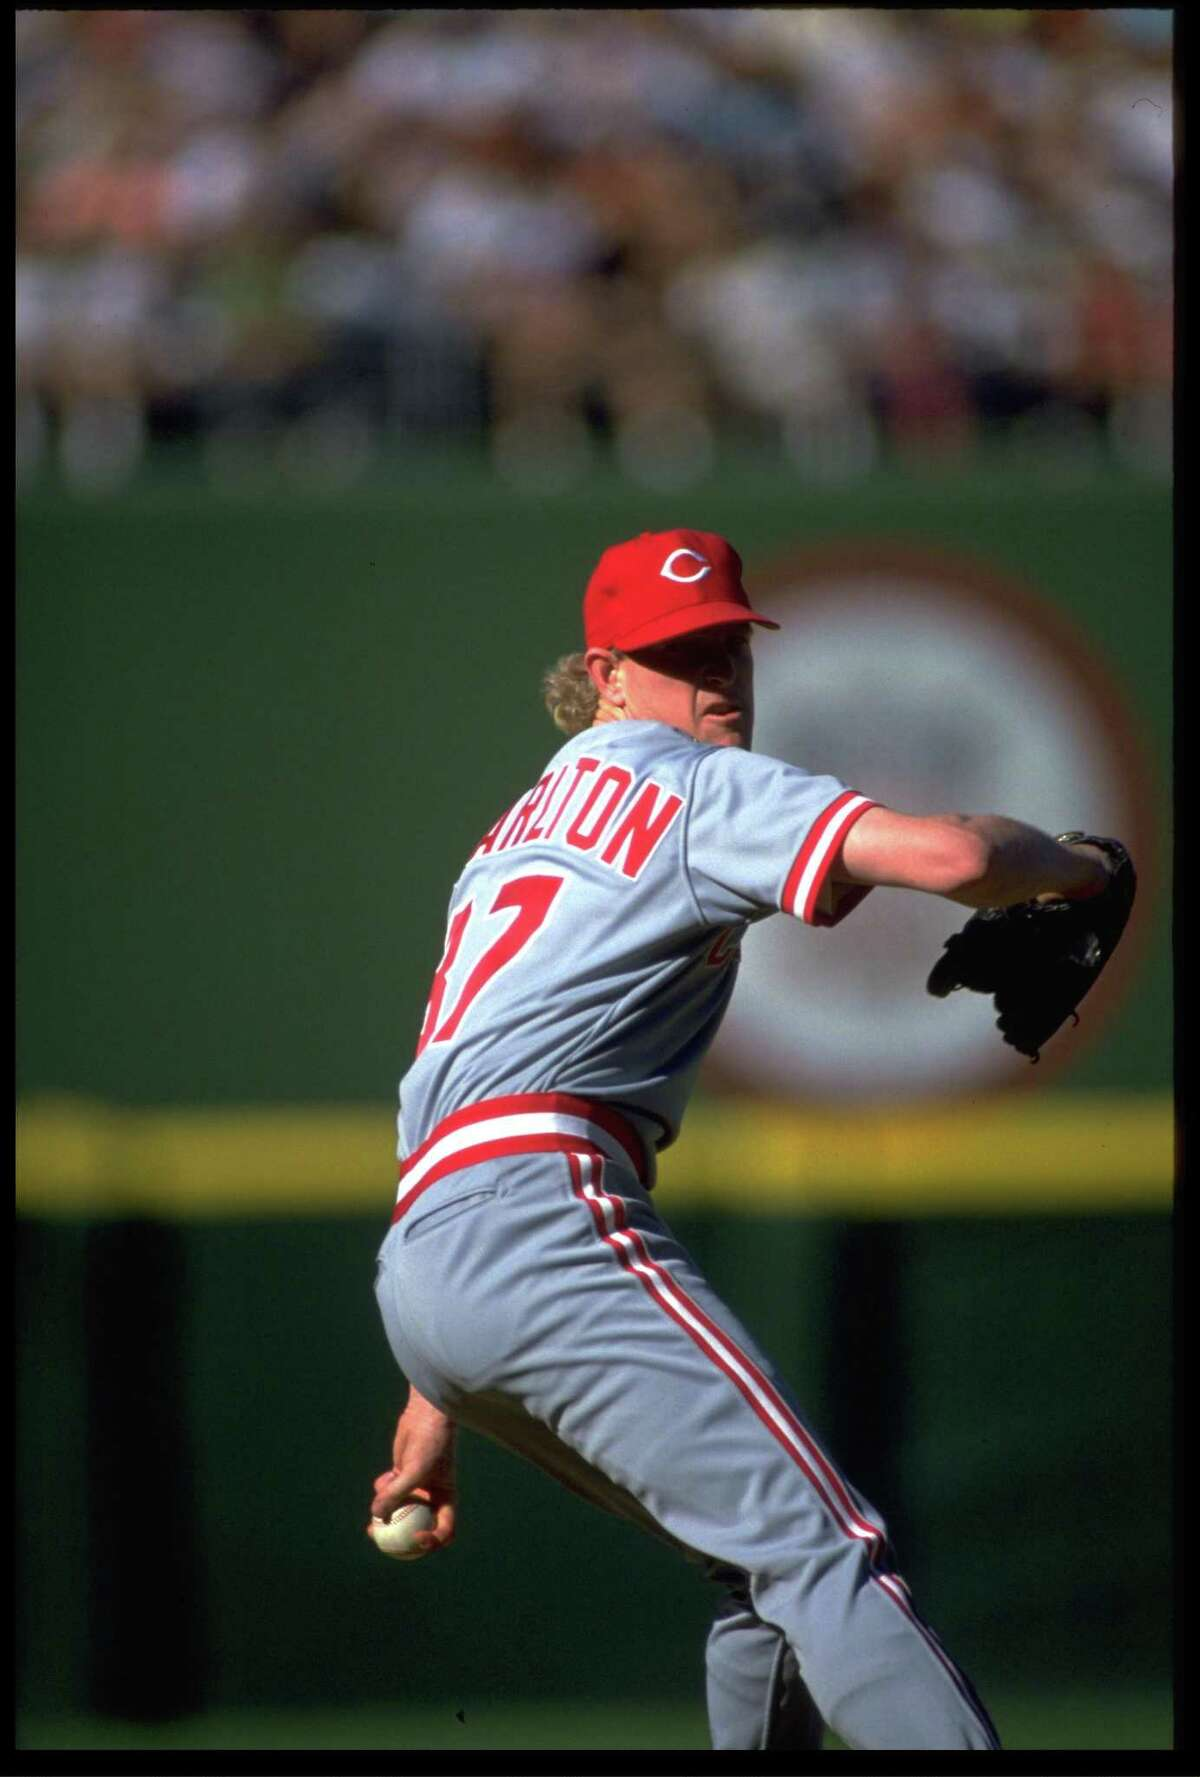 1990: CINCINNATI REDS PITCHER NORM CHARLTON DELIVERS A SPLIT-FINGER FASTBALL DURING THEIR GAME AGAINST THE SAN DIEGO PADRES AT JACK MURPHY STADIUM IN SAN DIEGO, CALIFORNIA. MANDATORY CREDIT: STEPHEN DUNN/ALLSPORT.